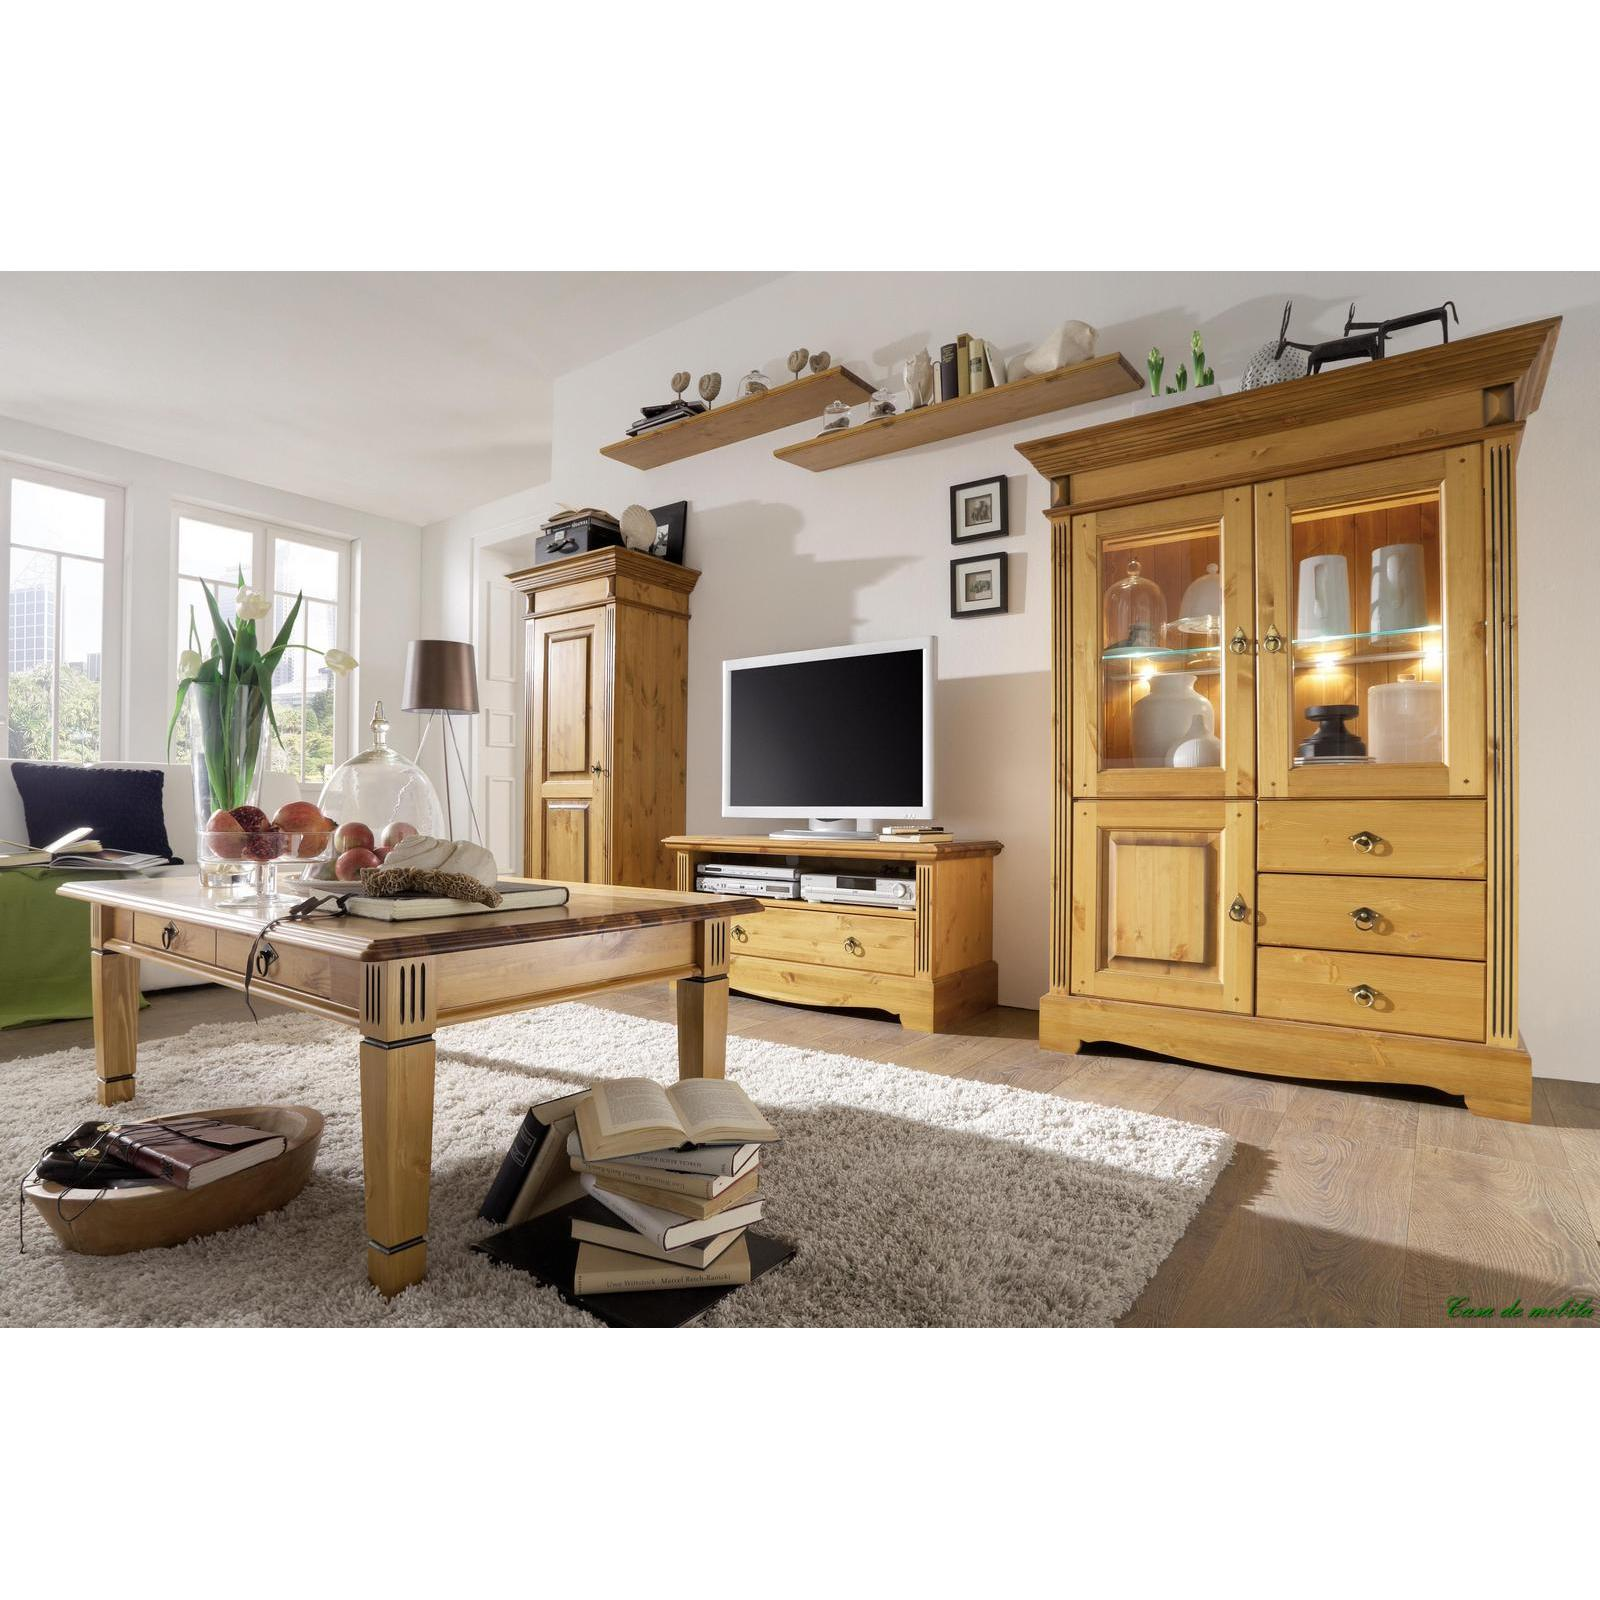 landhaus schrank schmal kiefer massiv honig g teborg goldbraun lackiert antik patiniert links. Black Bedroom Furniture Sets. Home Design Ideas